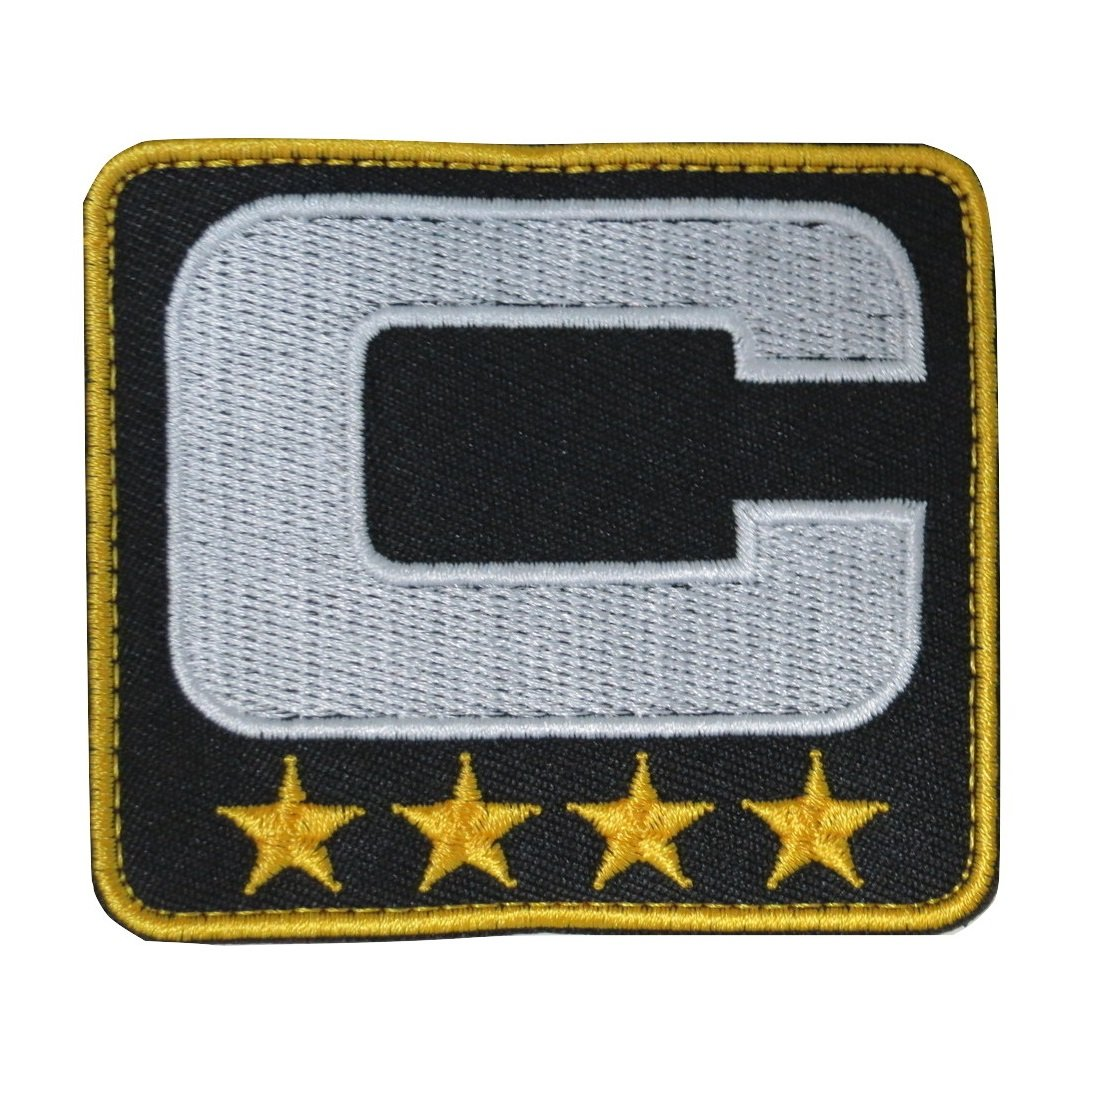 6224187e77005 Amazon.com: TrendyLuz Black Captain C Patch (4 Gold Stars ...